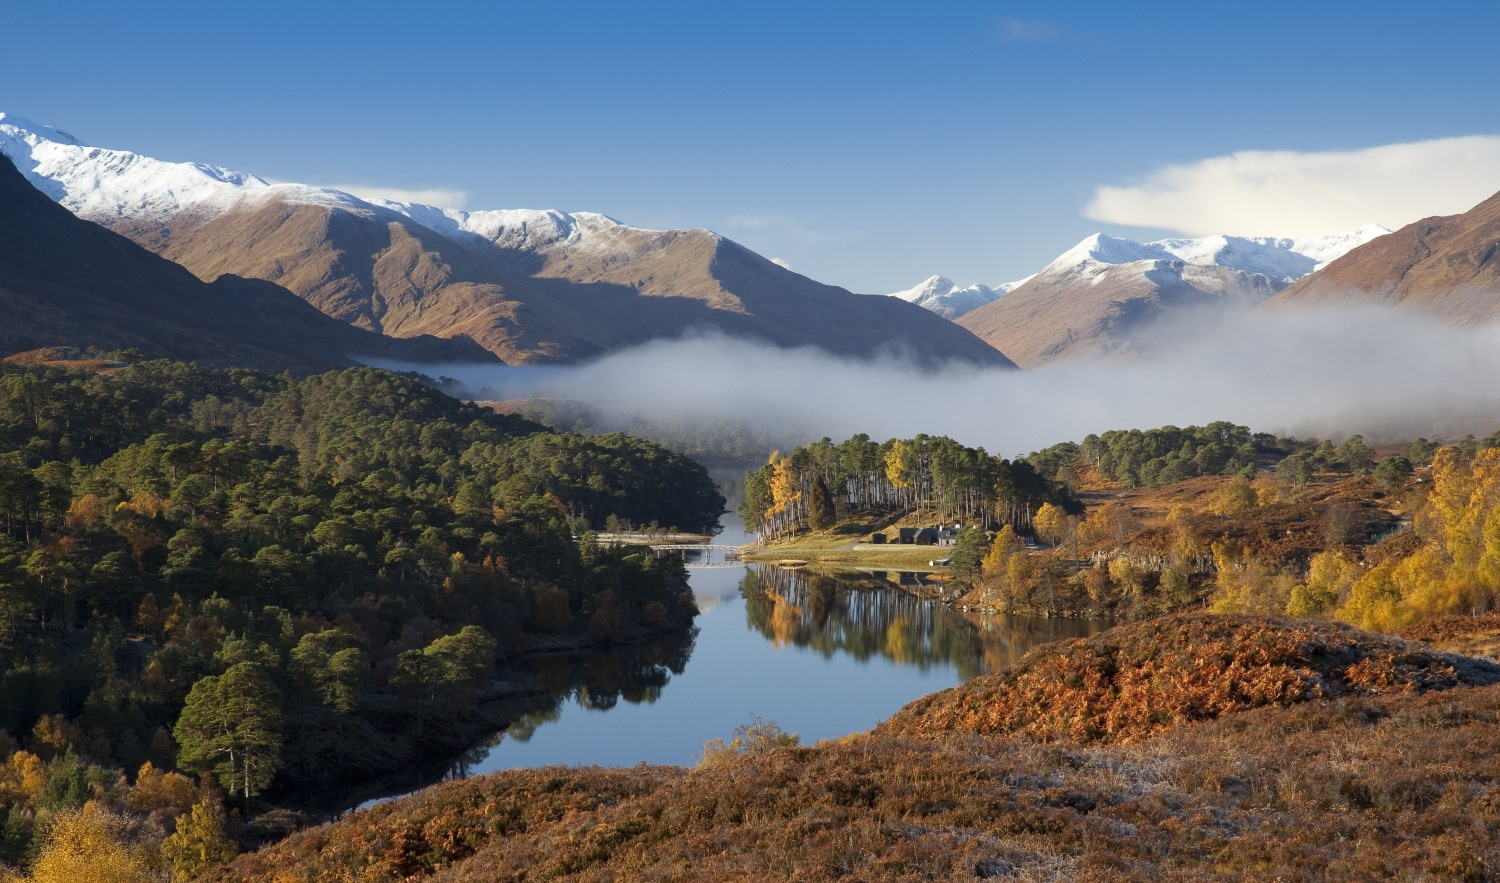 Glen Affric, often described as 'the most beautiful Glen in Scotland', near Inverness